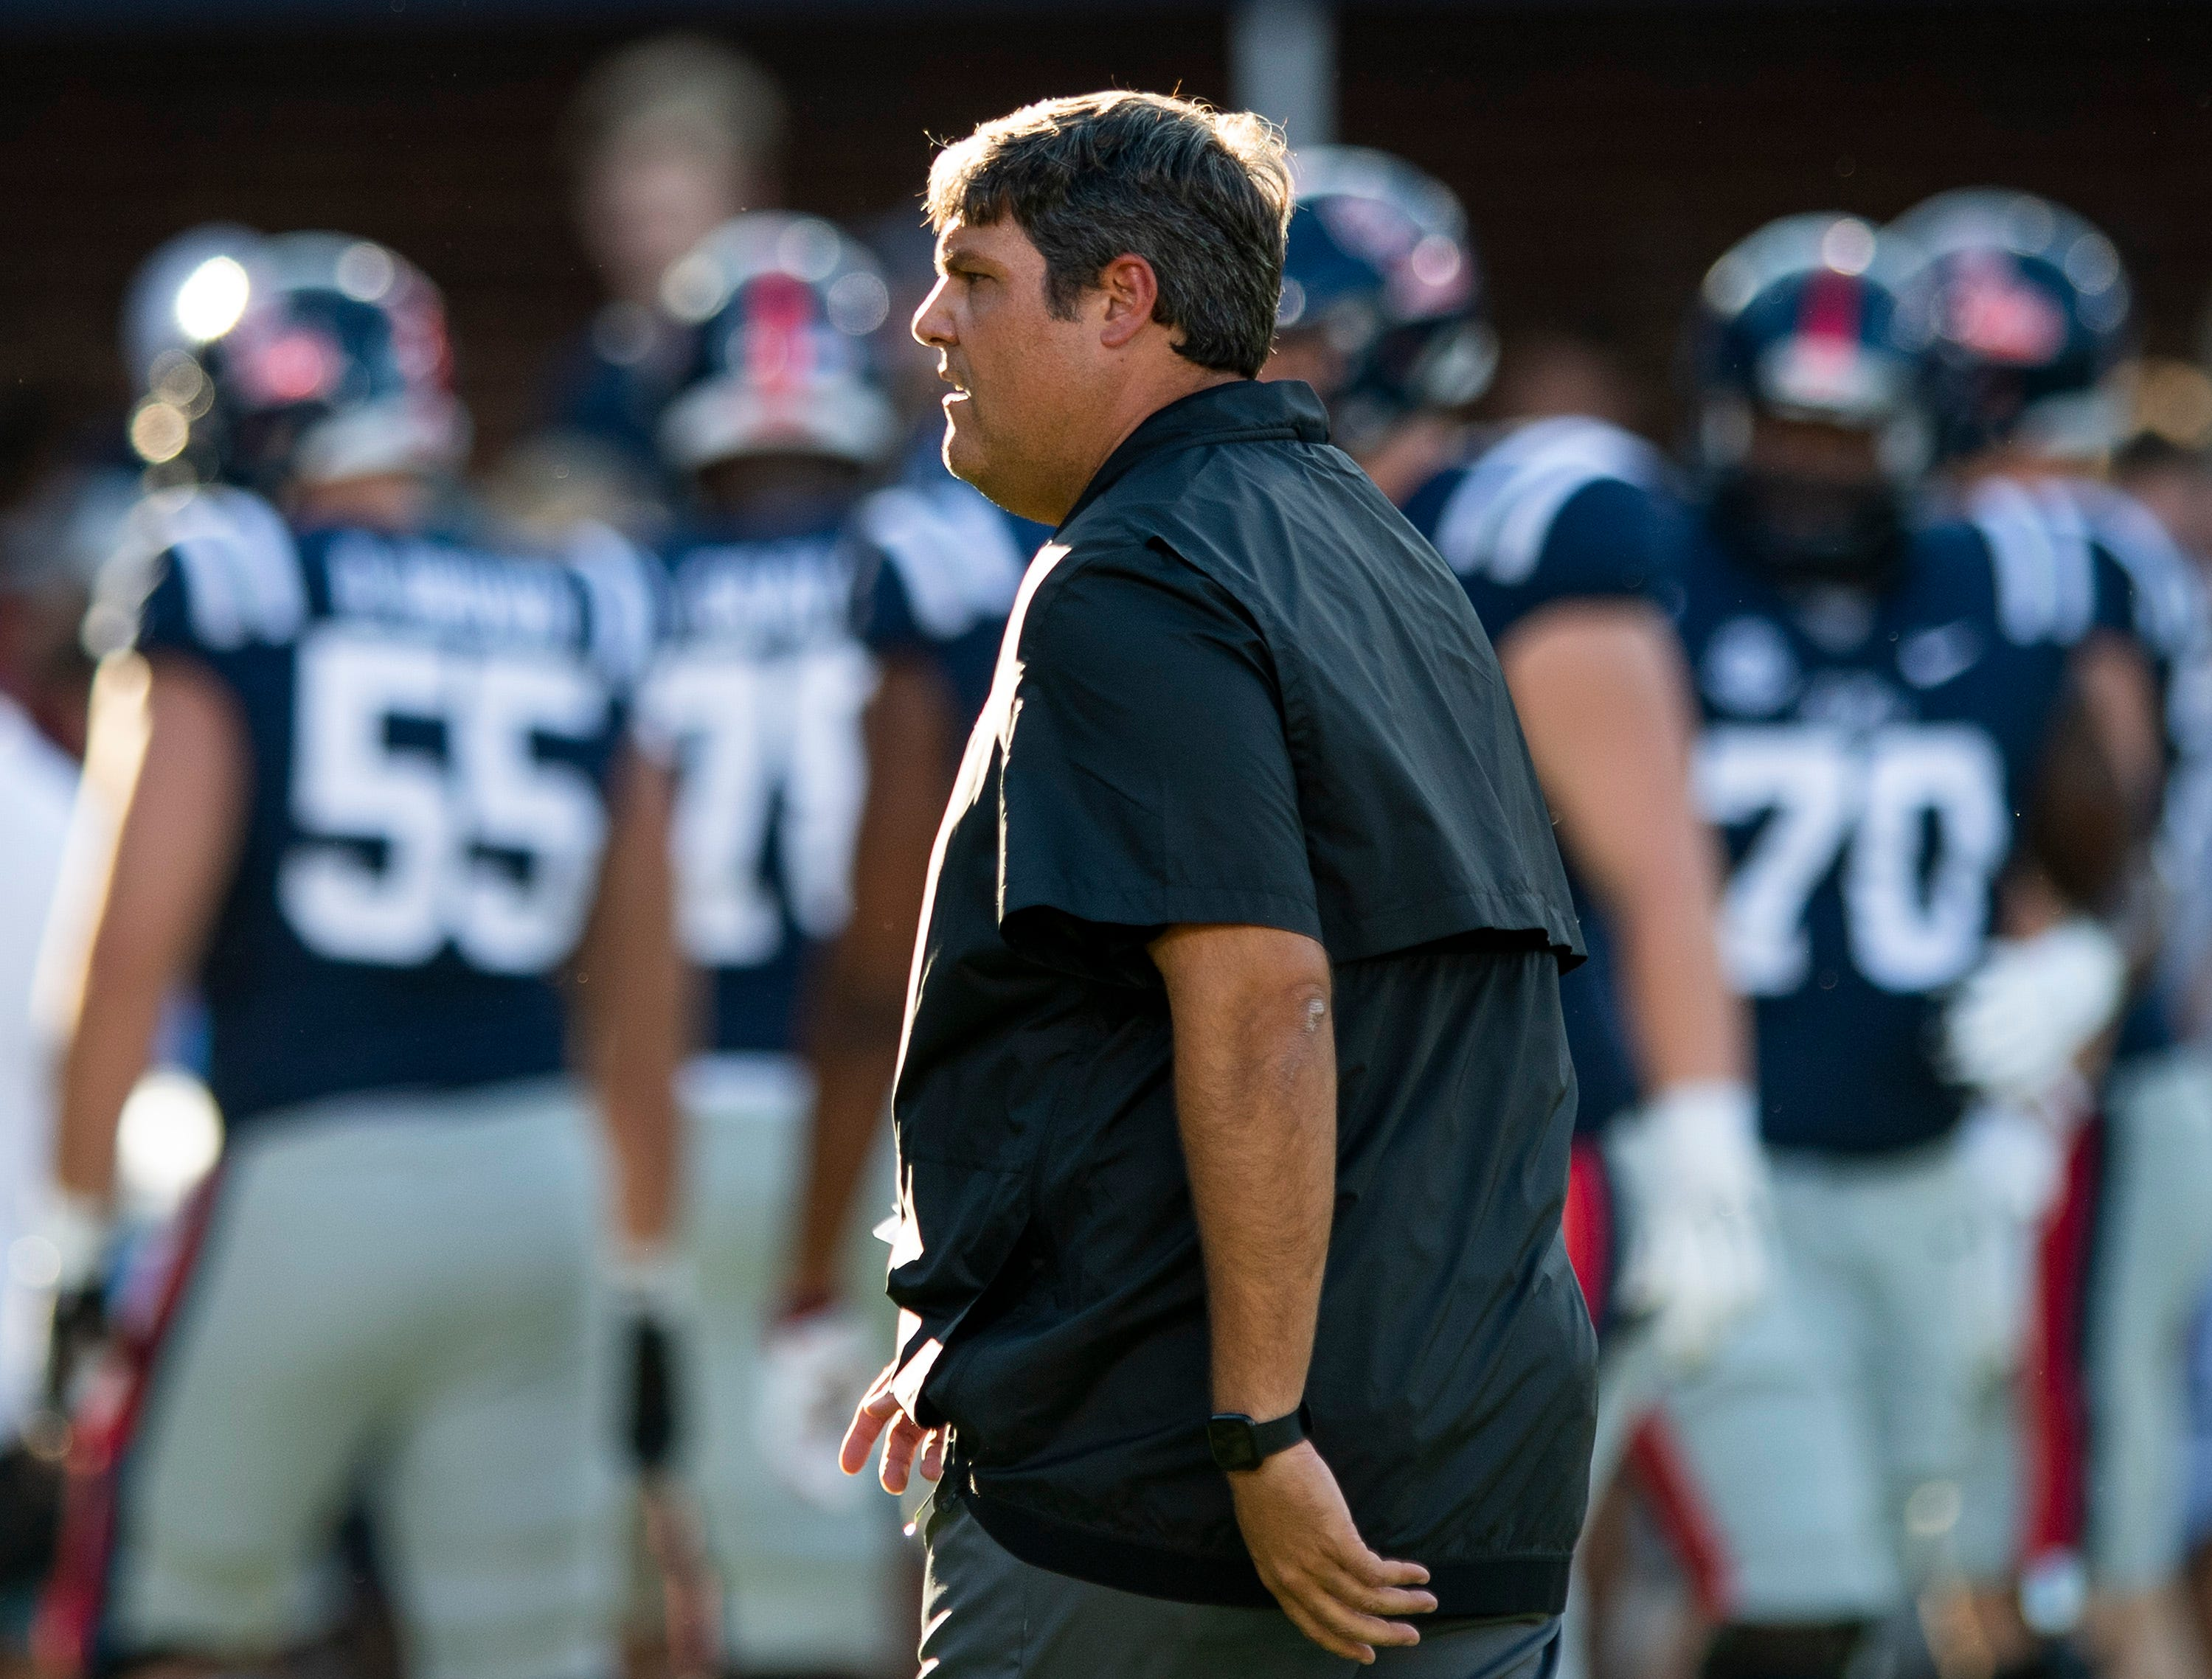 Ole Miss head coach Matt Luke during warm ups before the Ole Miss game in Oxford, Ms., on Saturday September 15, 2018.